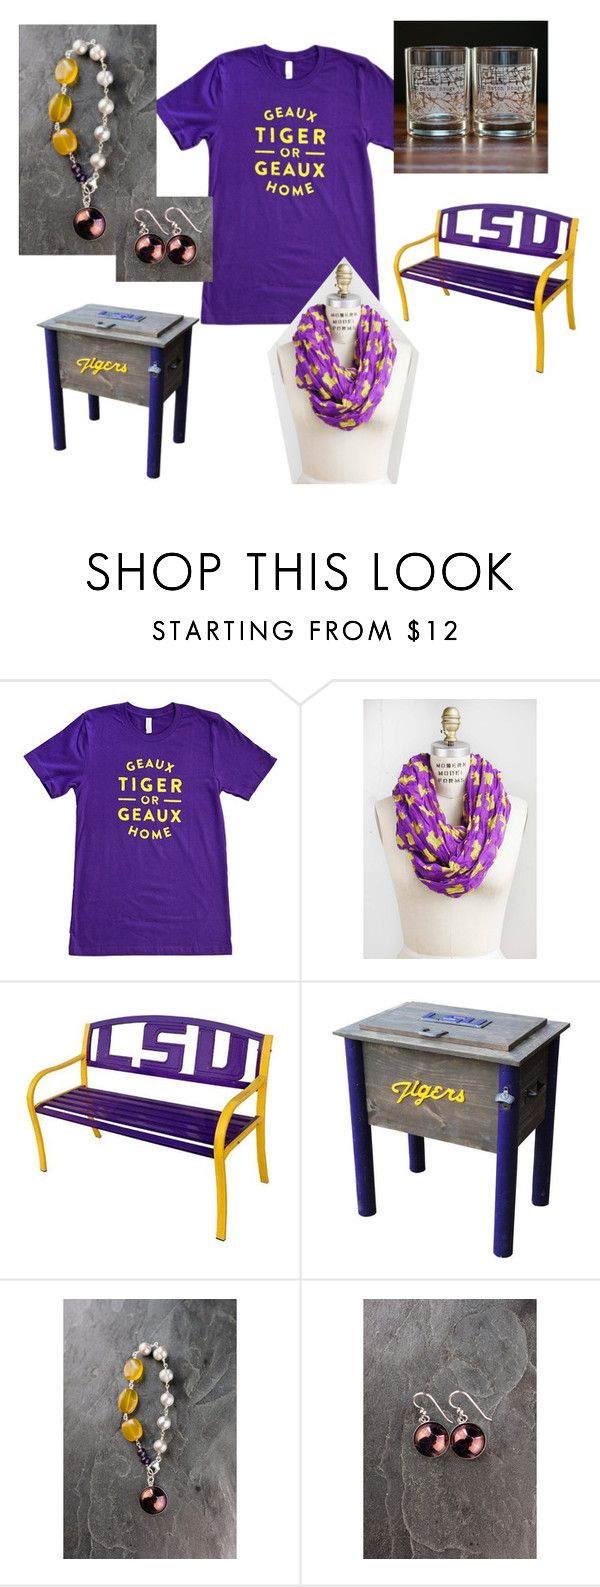 Baton Rouge College Town Collection by bourbonandboots on Polyvore featuring interior, interiors, interior design, home, home decor, interior decorating and lsu